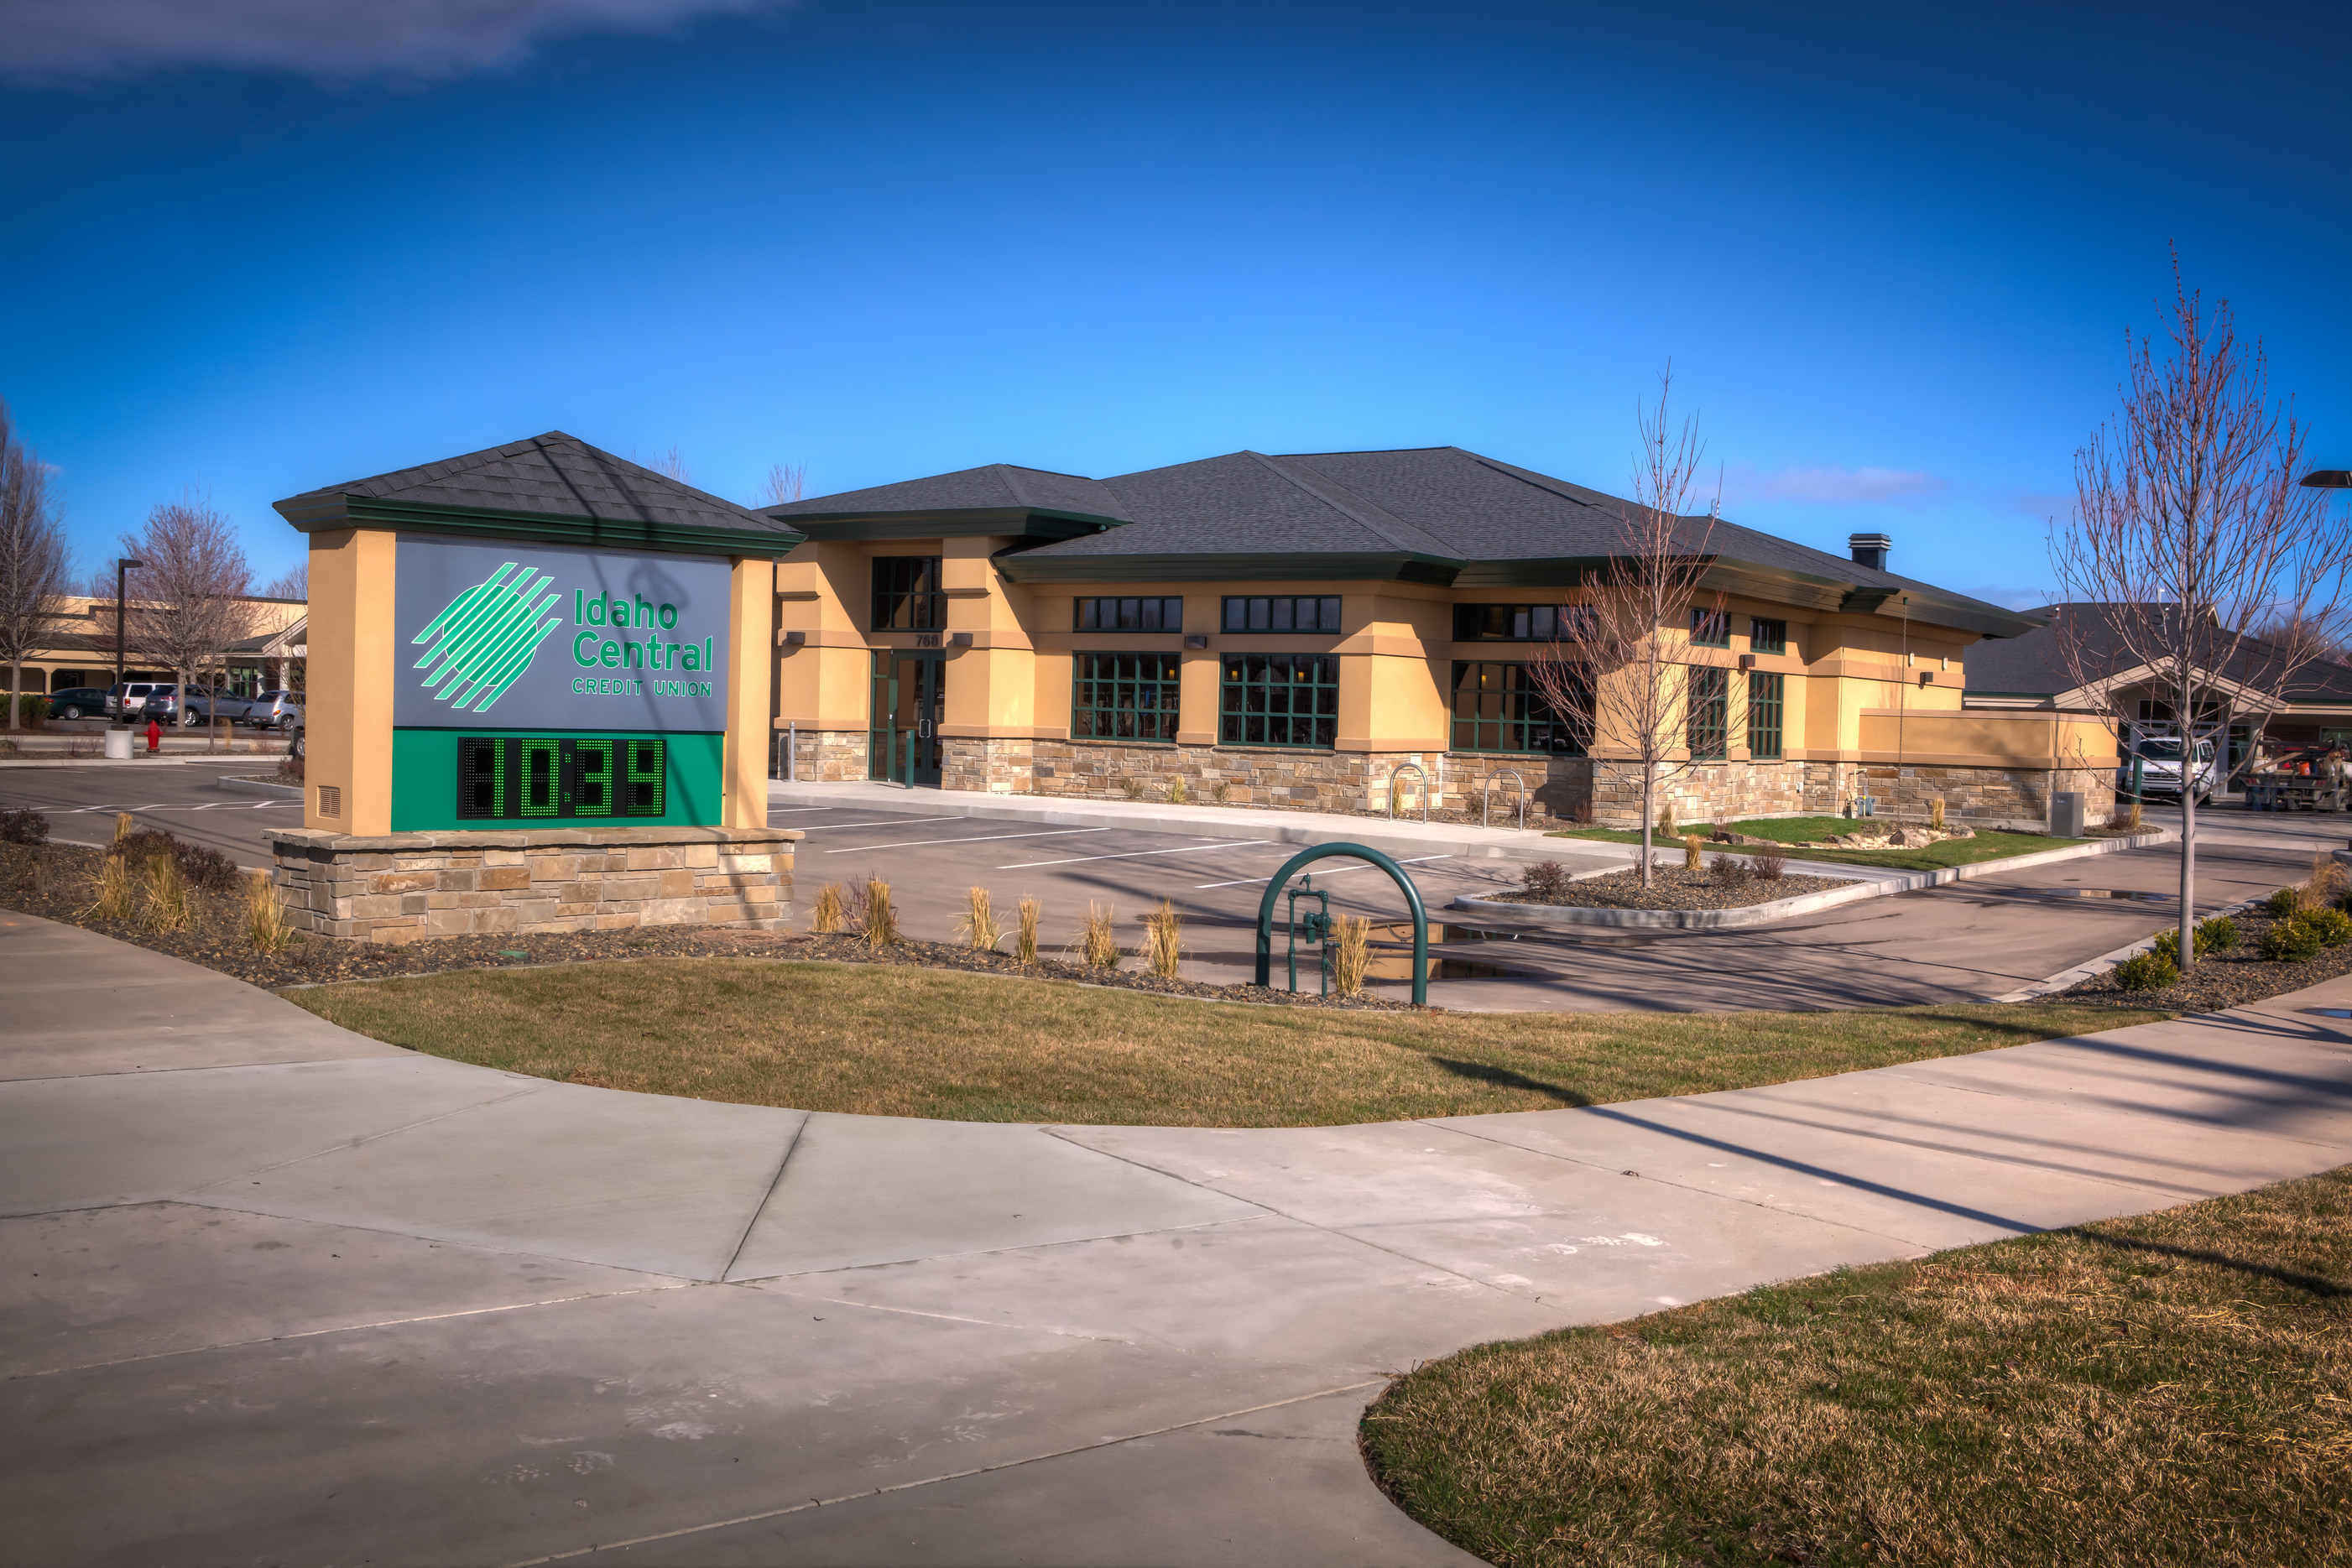 eagle branch & atm - idaho central credit union